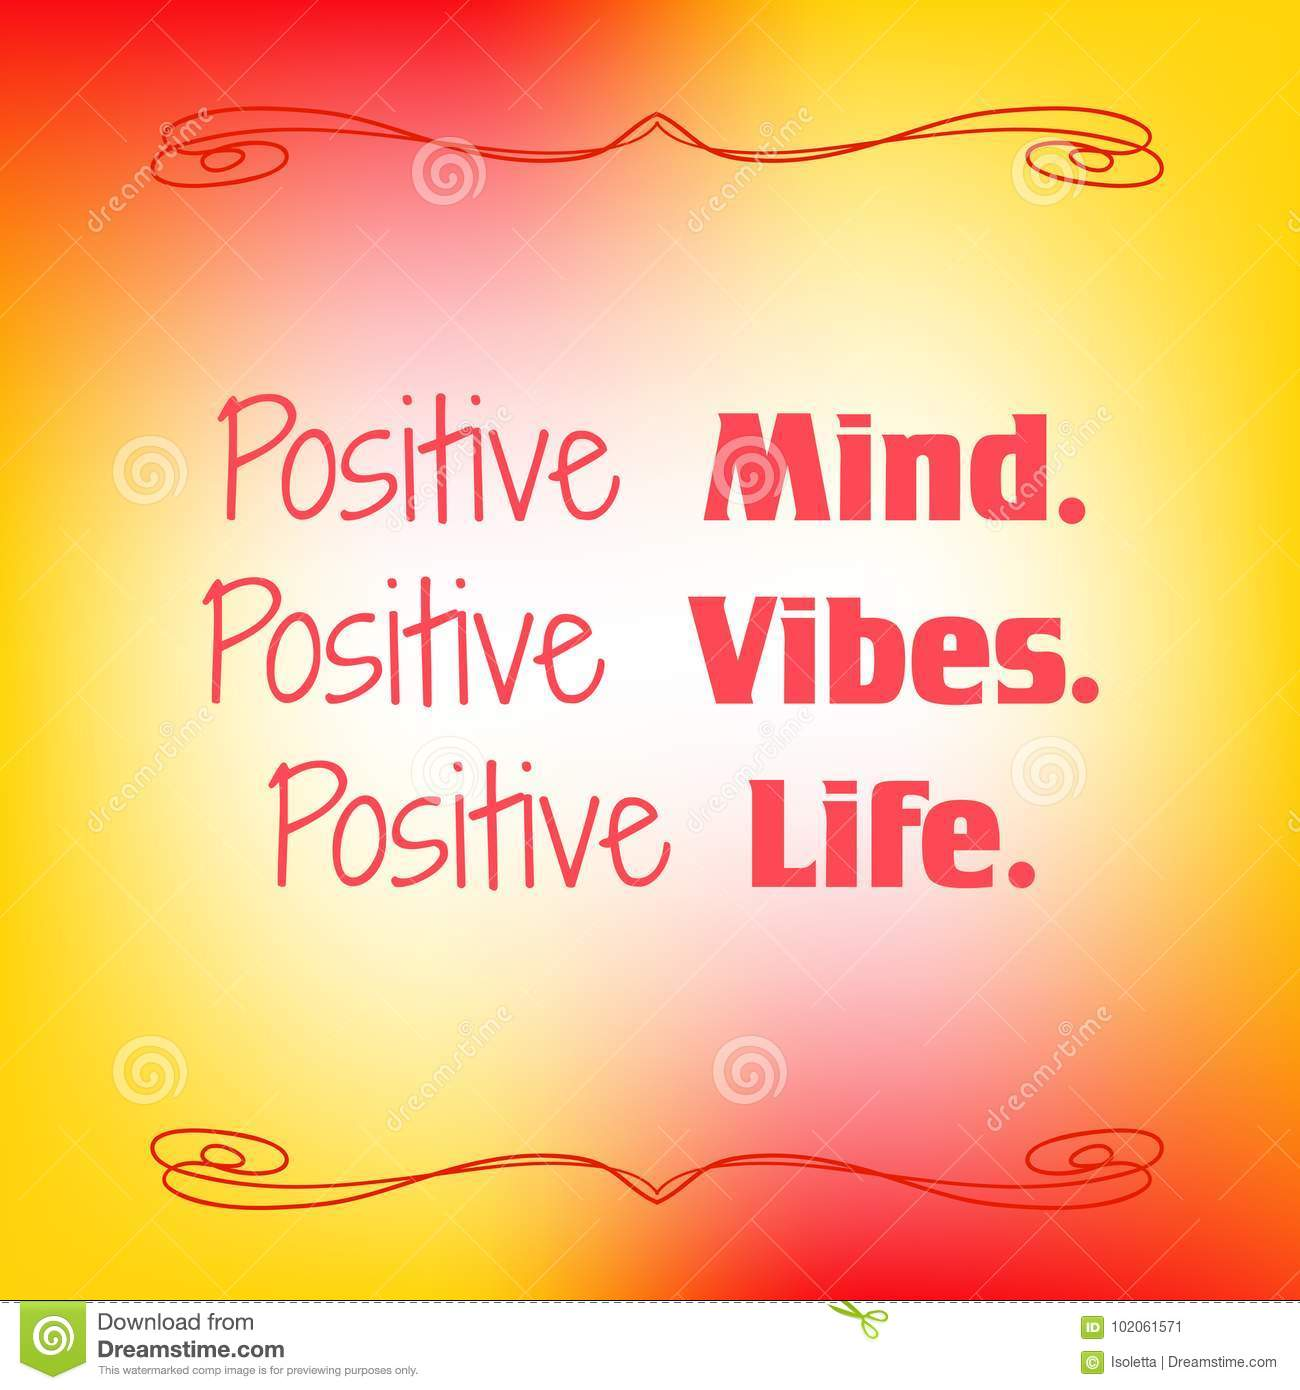 Positive Vibes Quotes | Positive Mind Positive Vibes Positive Life Inspirational Quote On